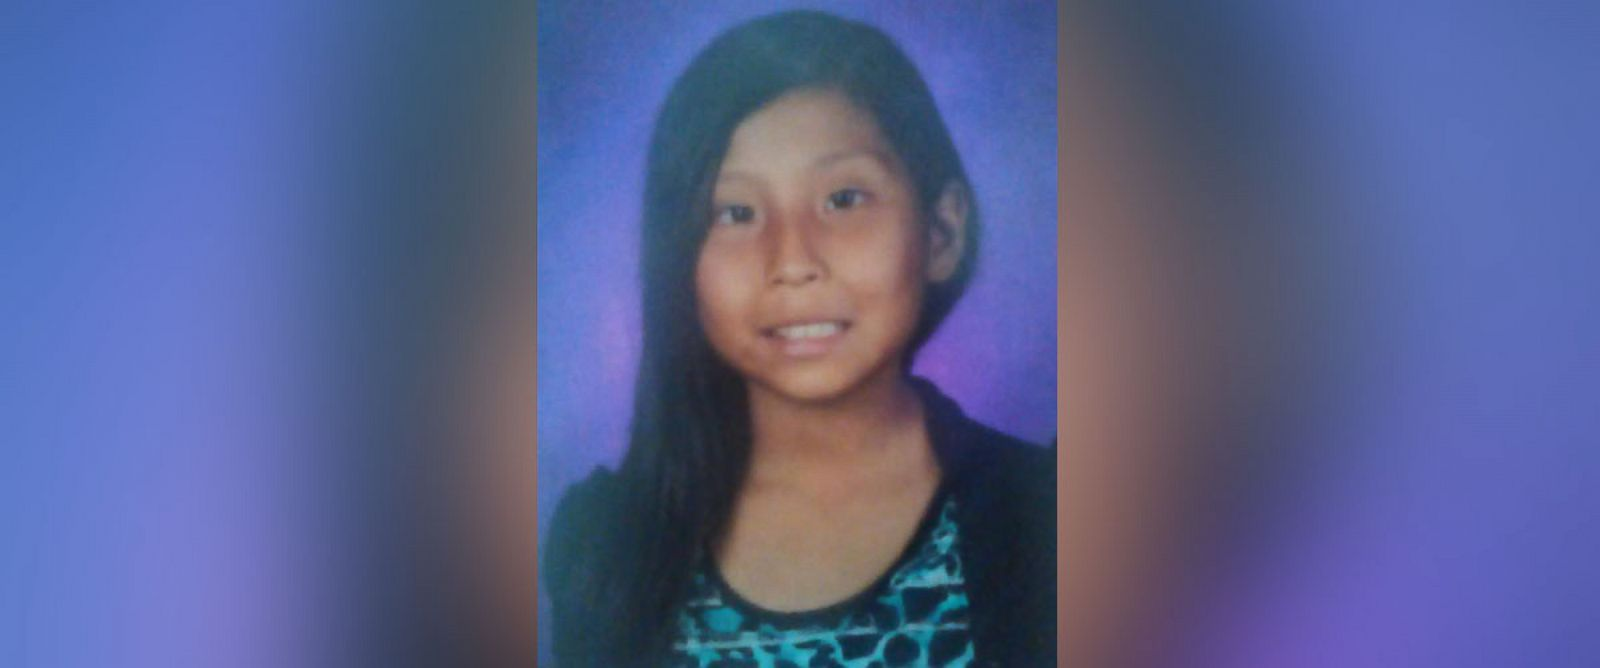 11 year old girl kidnapped from navajo nation in new mexico found dead